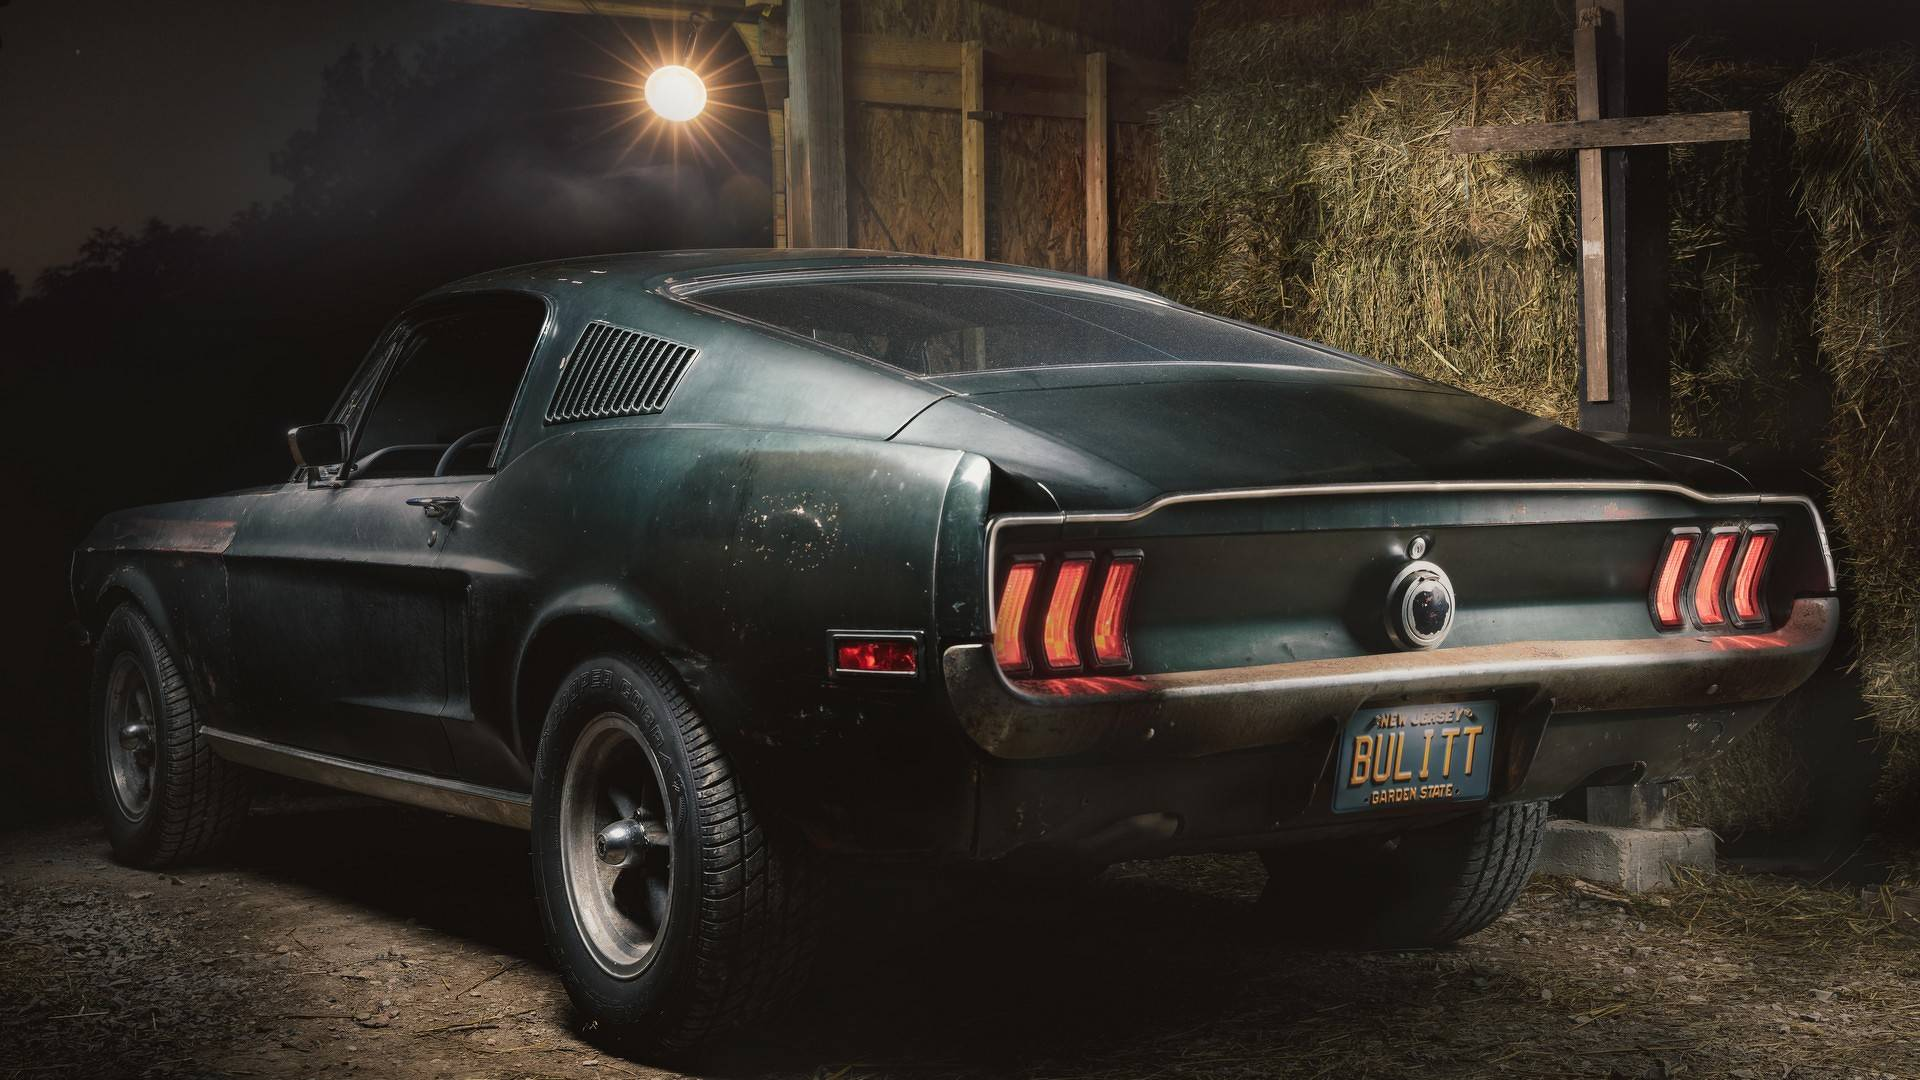 1968_Ford_Mustang_Bullit_original_movie_car_0006